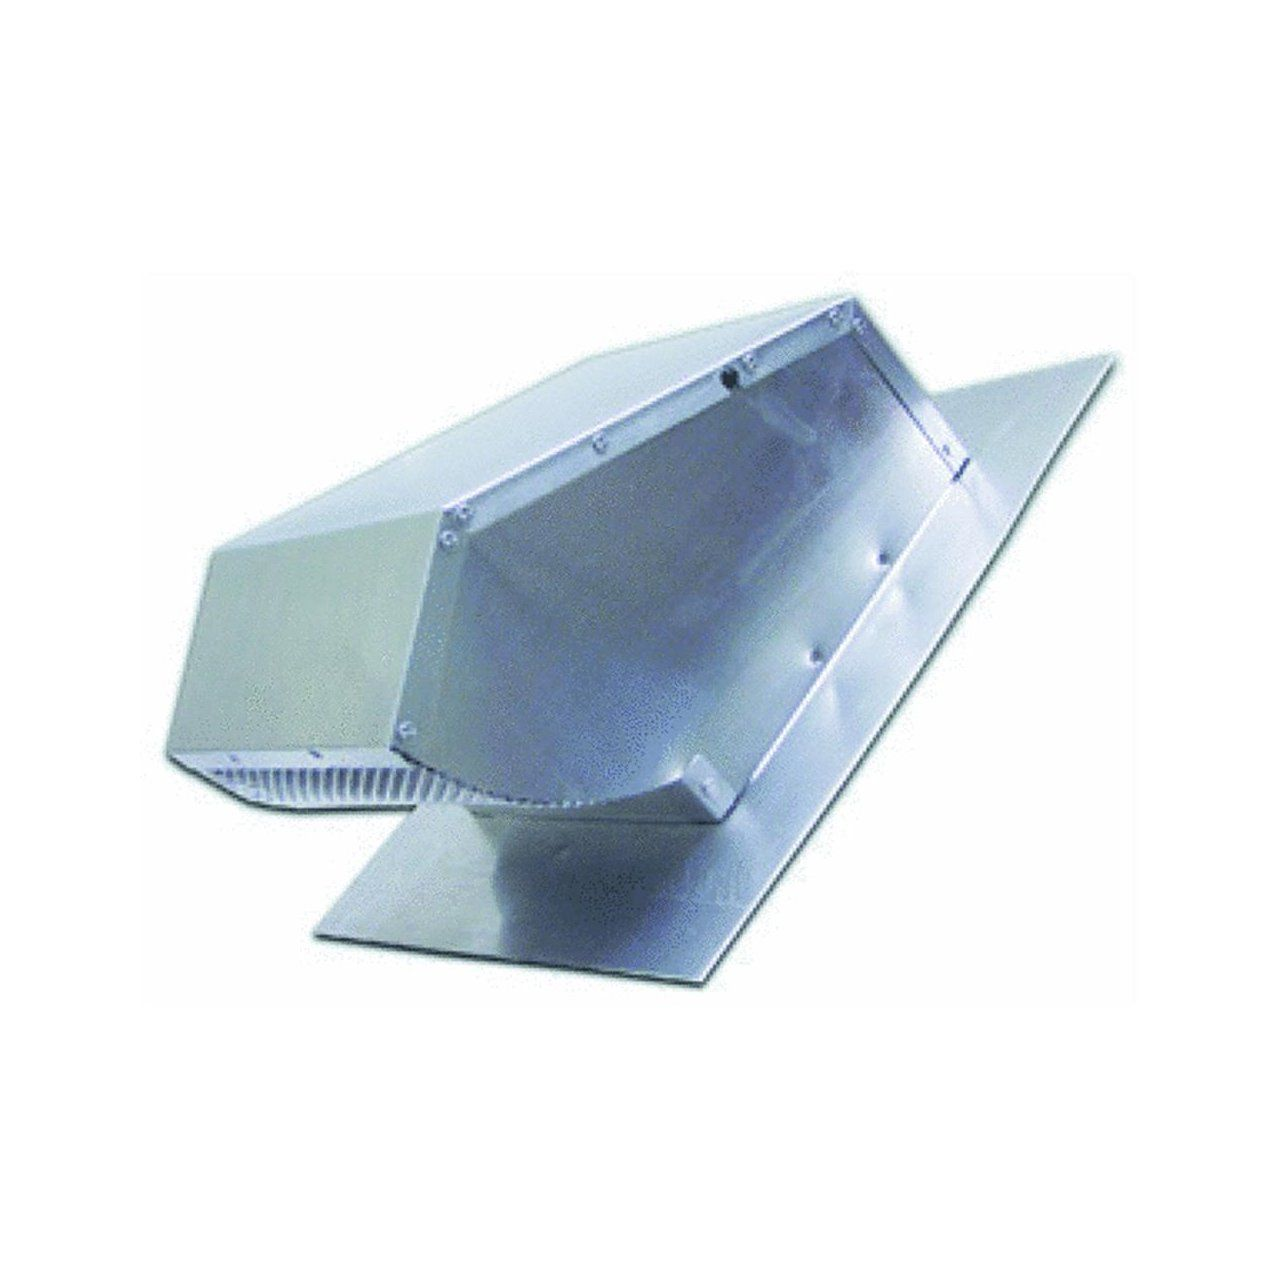 10 Roof Cap You Can Get More Details By Clicking On The Image Roof Cap Range Hood 10 Things